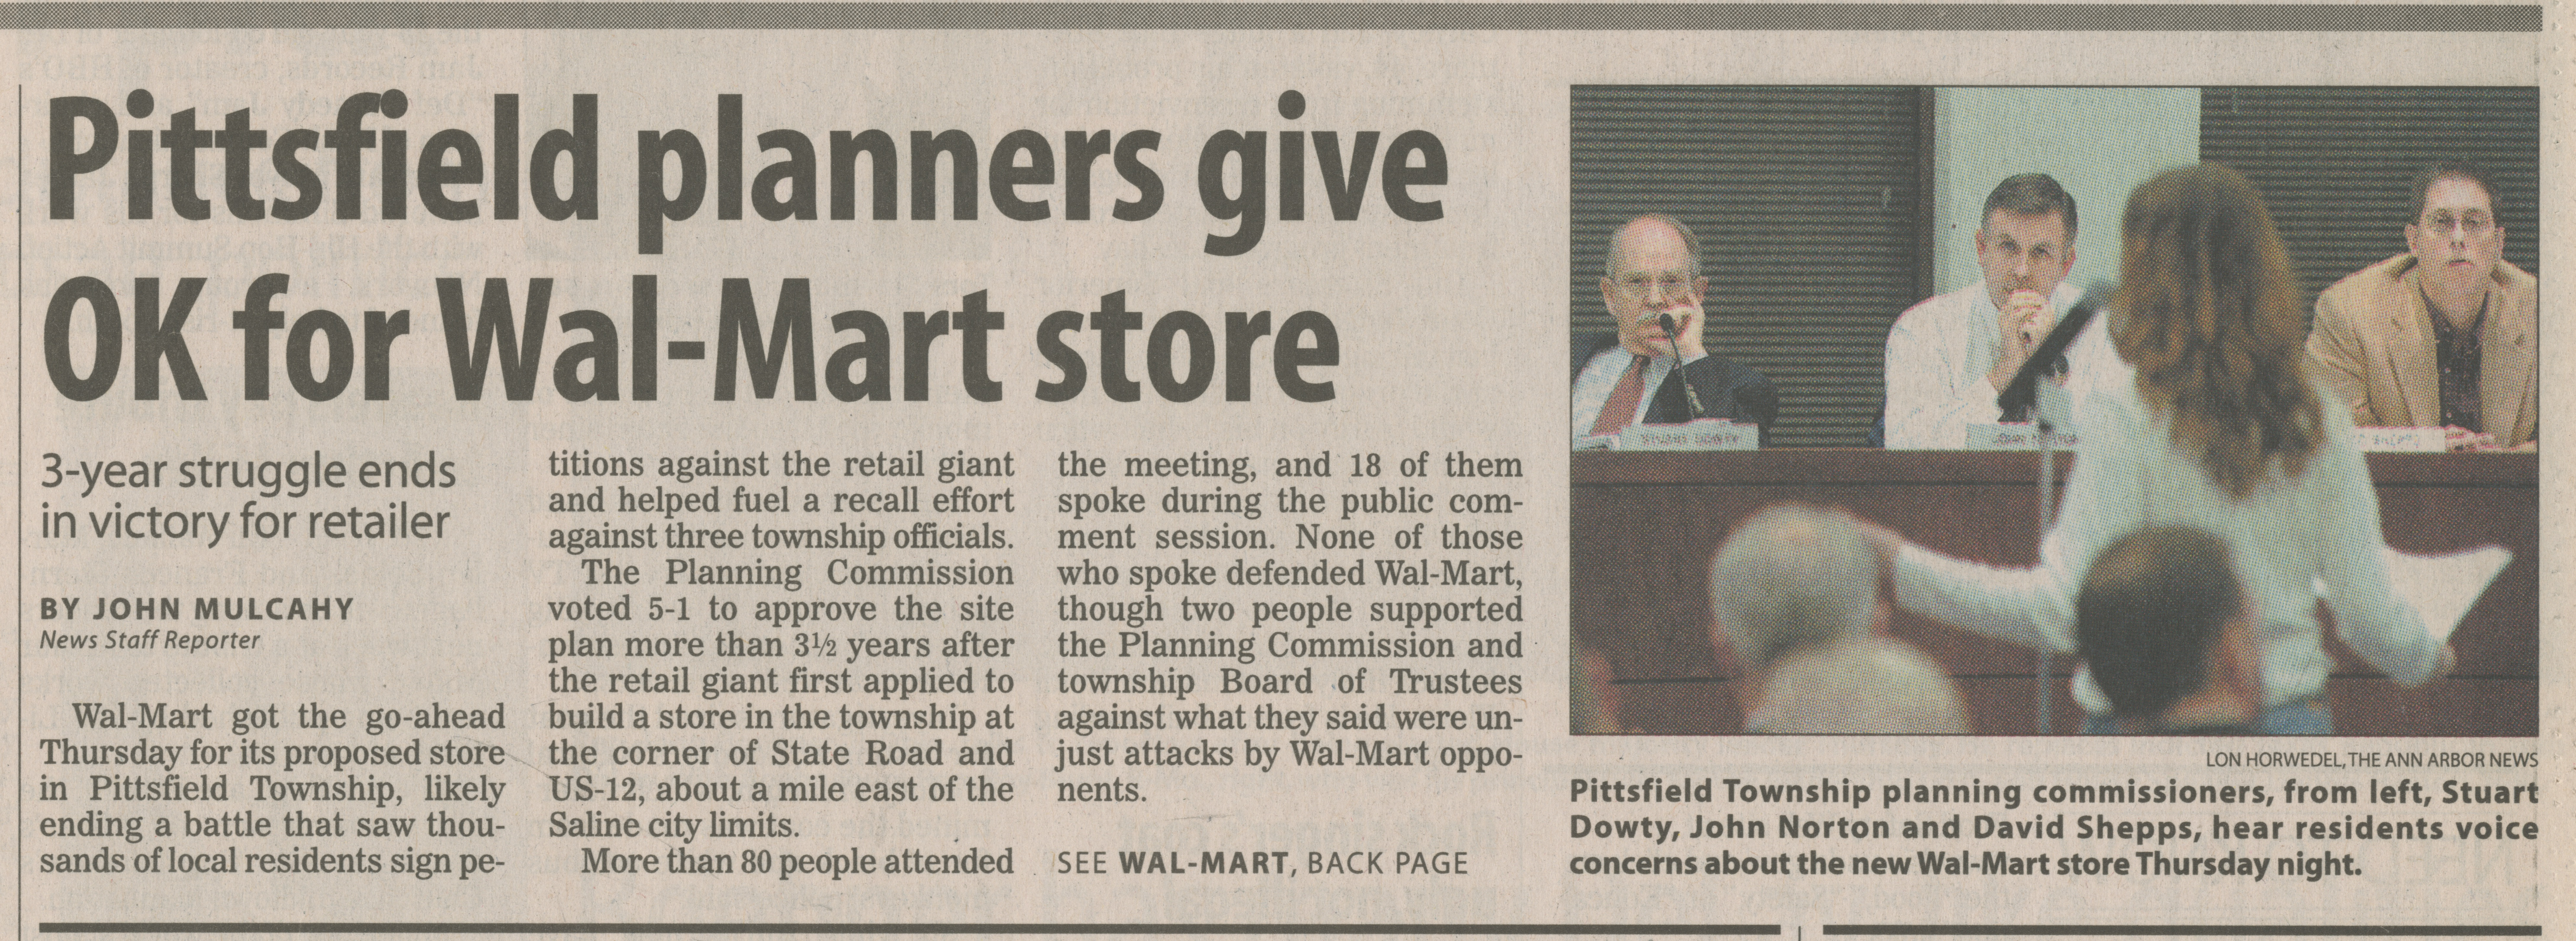 Pittsfield planners give OK for Wal-Mart store image